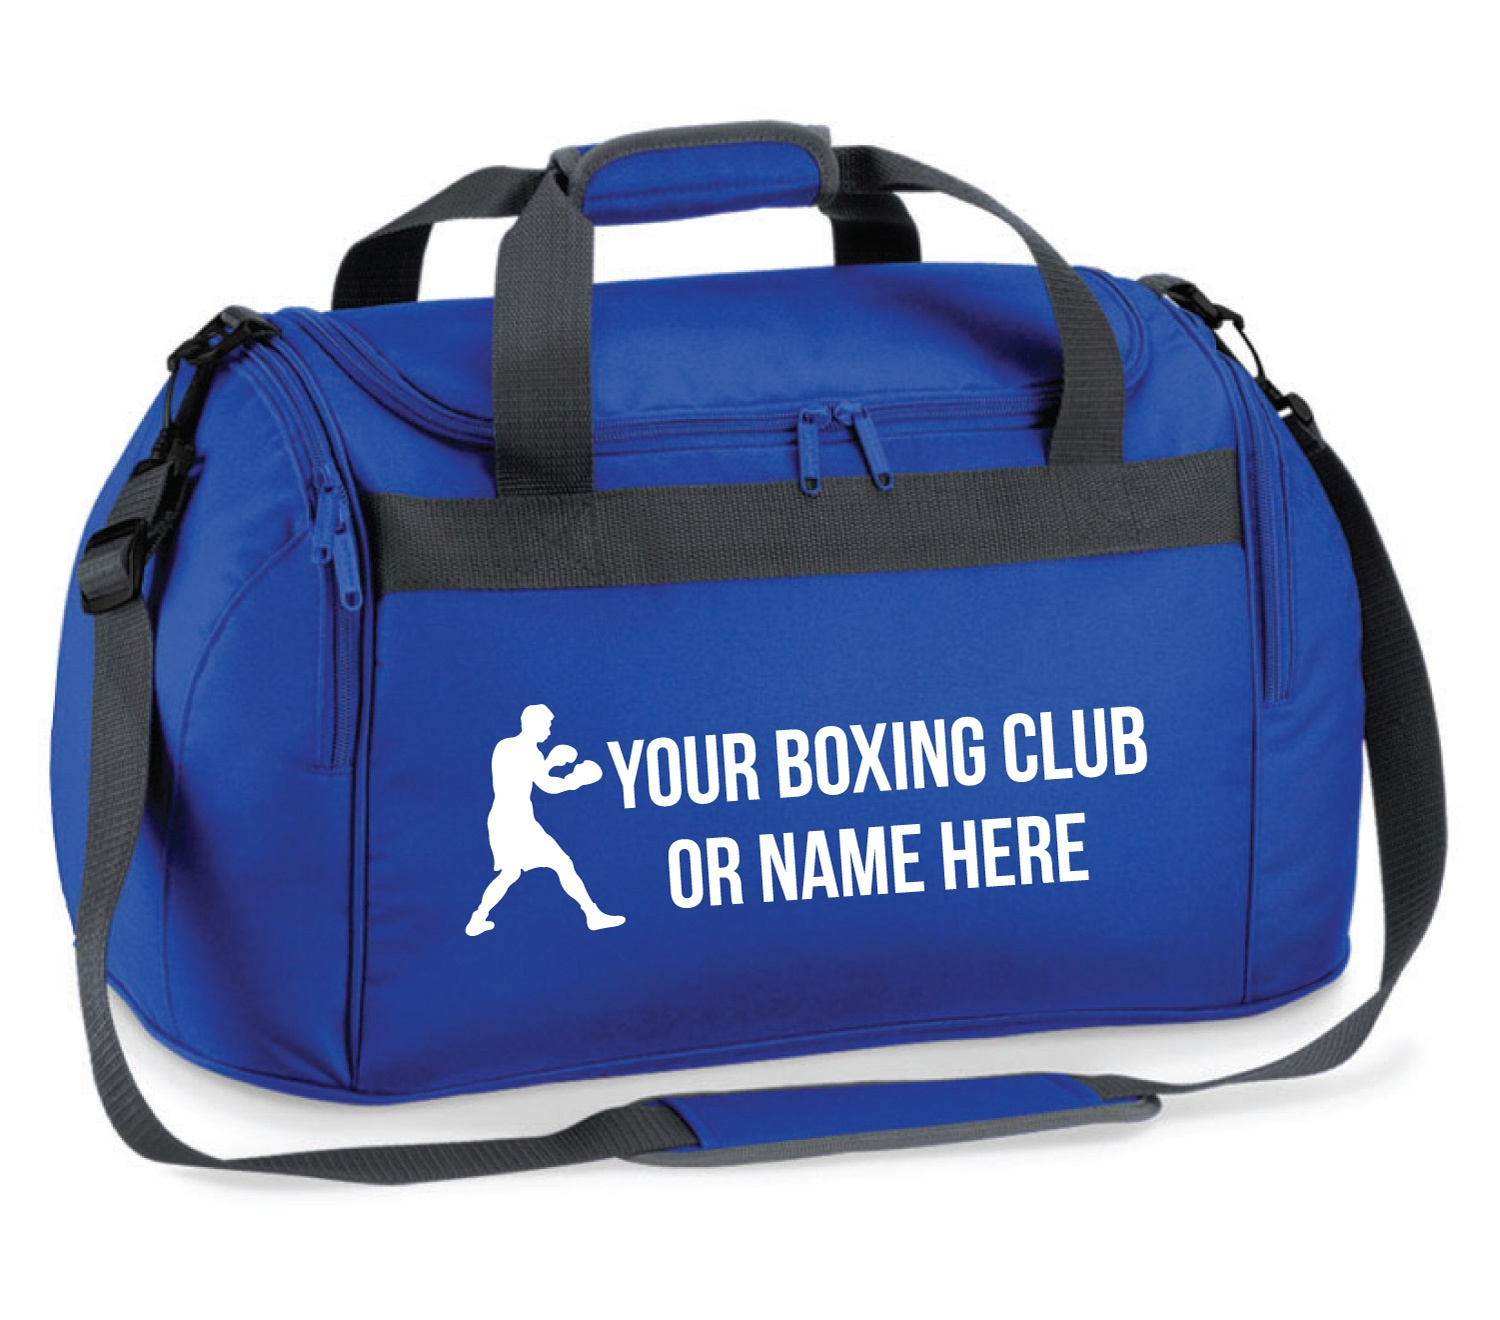 BOYS PERSONALISED BOXING BARREL BAG KIDS SPORTS GYM HOLDALL CHILDRENS GIFT